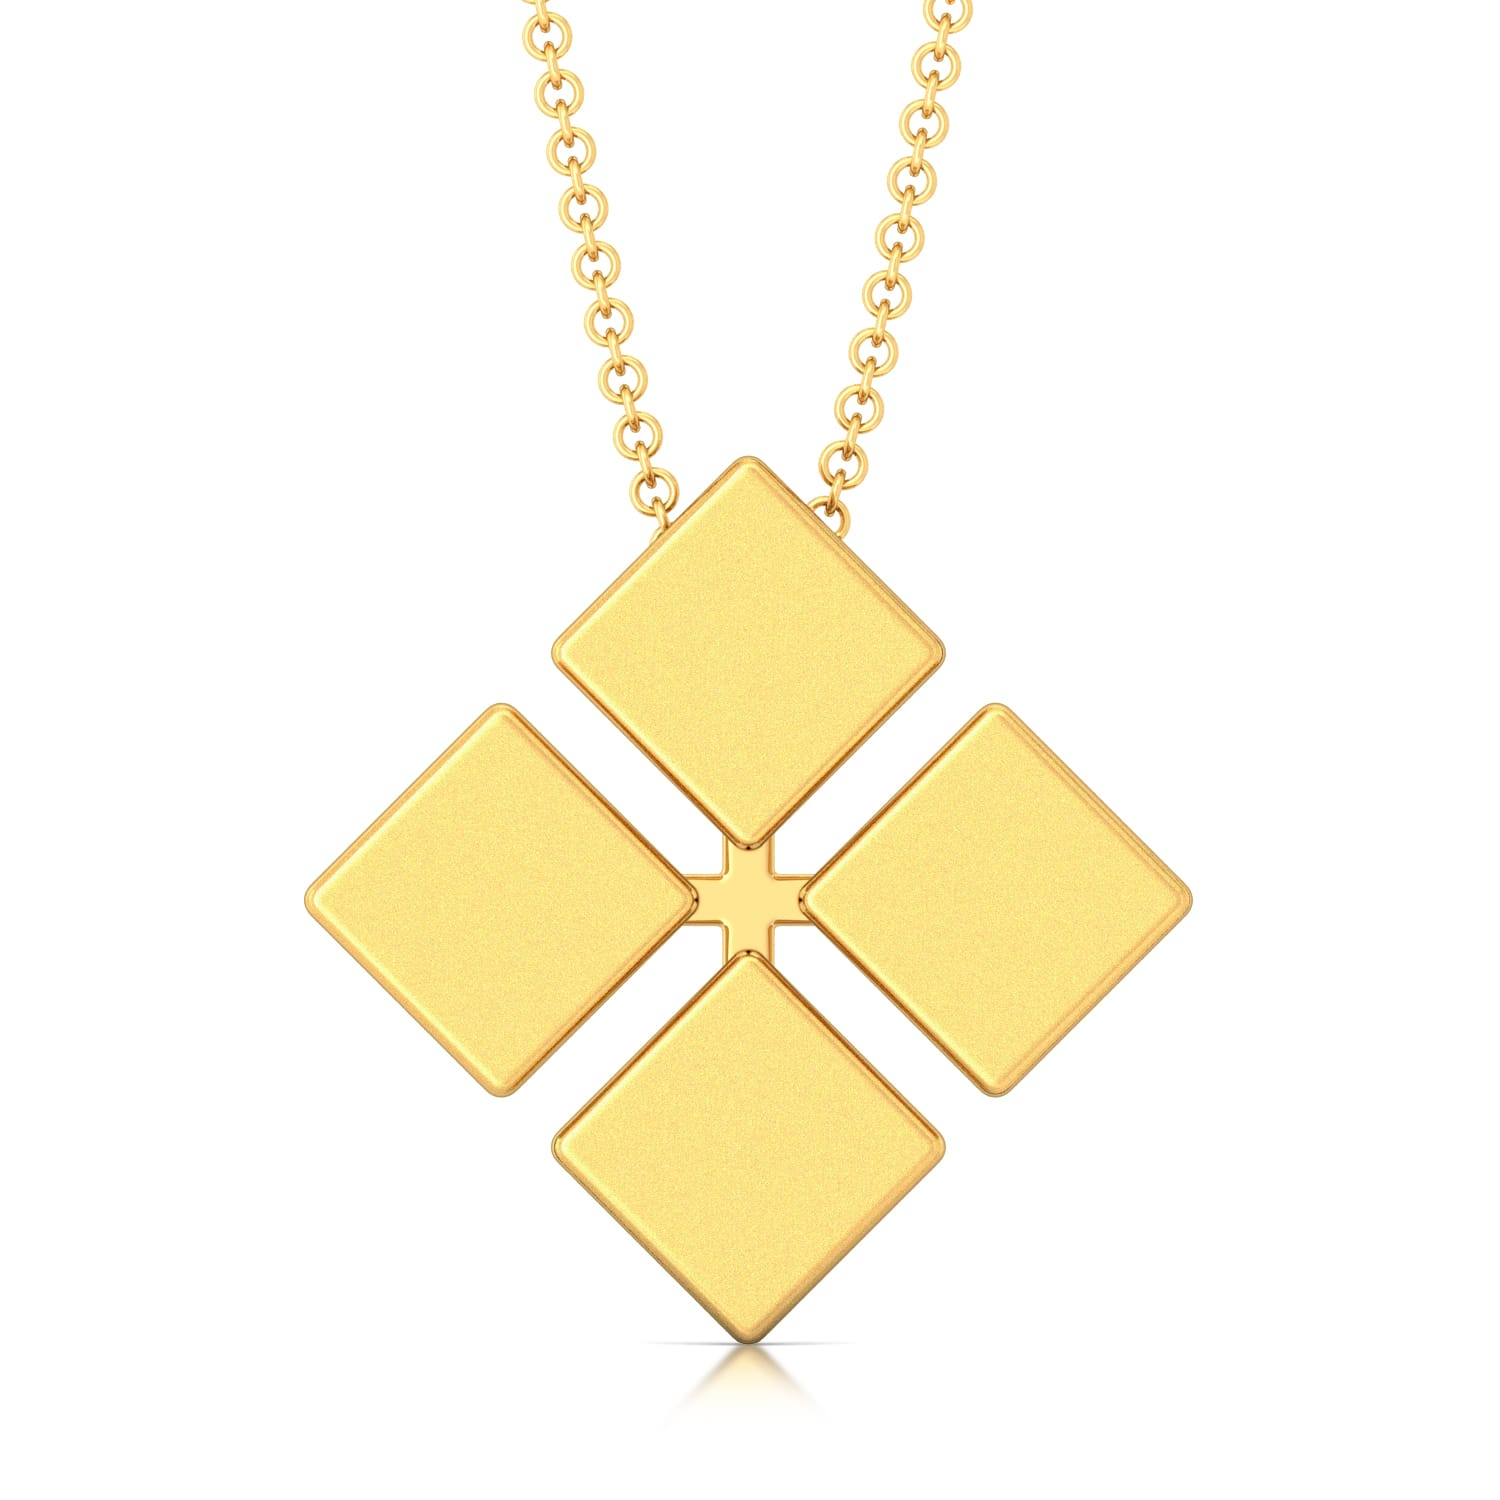 Tetracube Gold Pendants